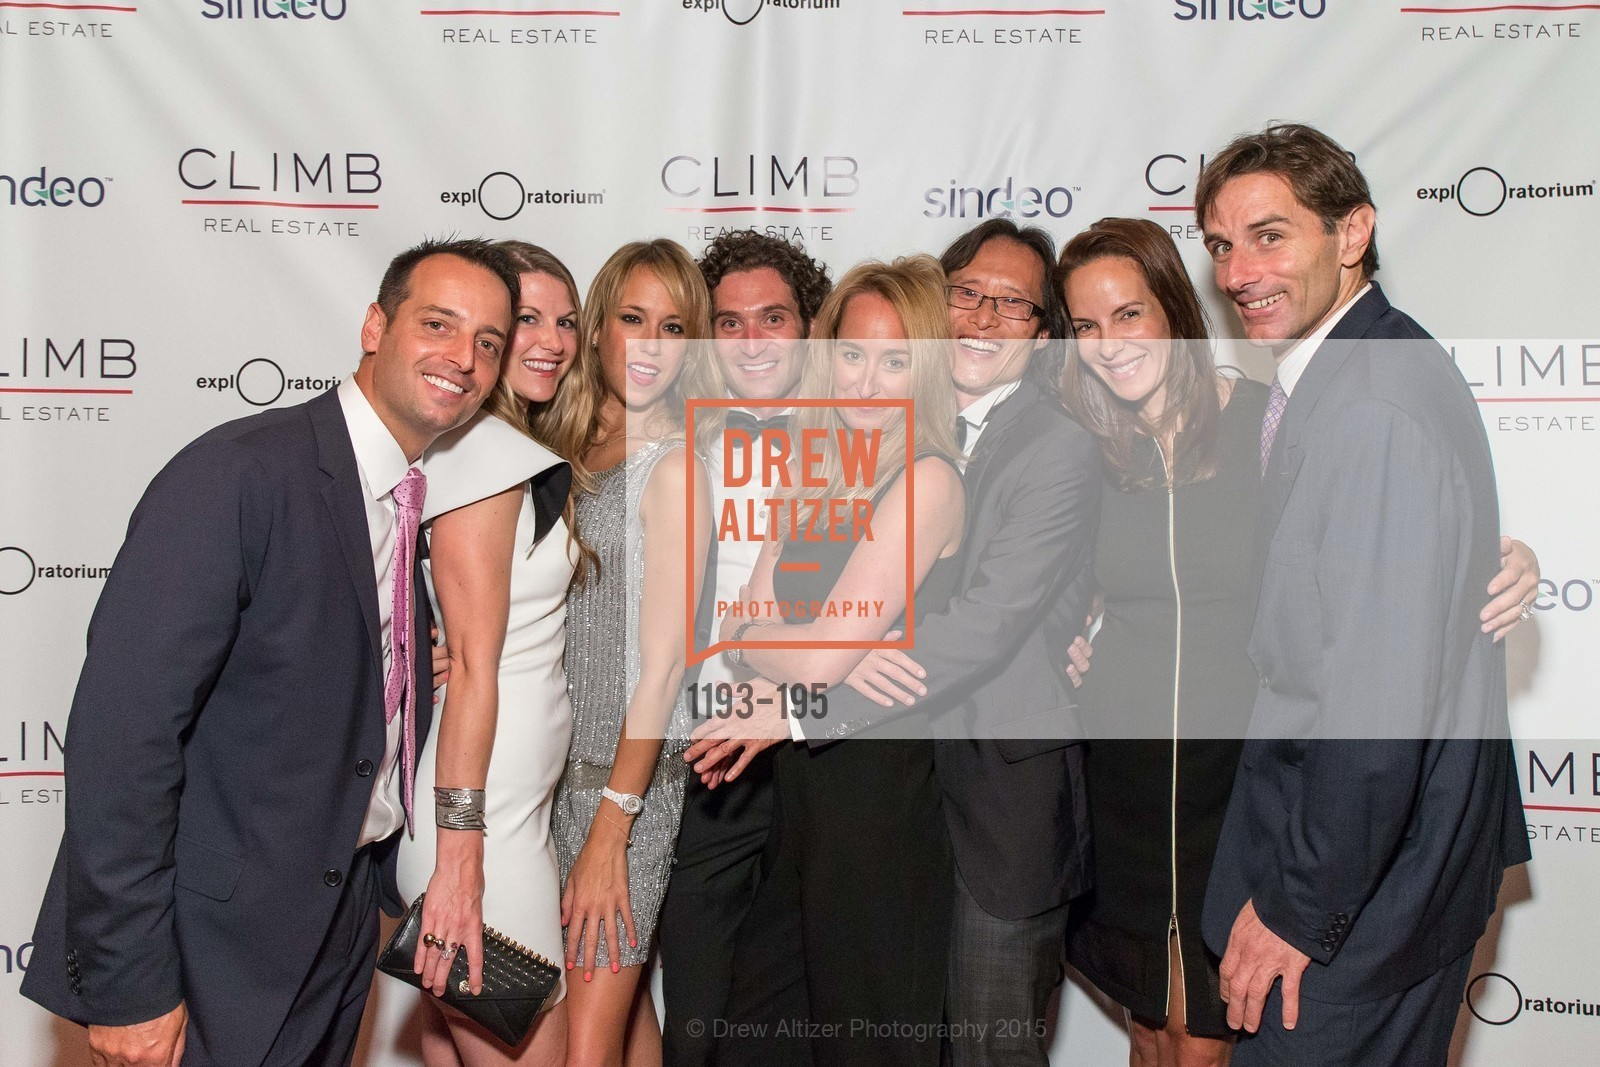 Joe Alioto Veronese, Anna Sawyer, Alexandra Duisberg, Justin Fichelson, Nicole Bulick, Richard Ling, Julie Veronese, Paul Pelosi Jr., Climb Real Estate and Sindeo Celebrate the Launch of Million Dollar Listing San Francisco, Local Edition San Francisco. 691 Market St, July 8th, 2015,Drew Altizer, Drew Altizer Photography, full-service event agency, private events, San Francisco photographer, photographer California